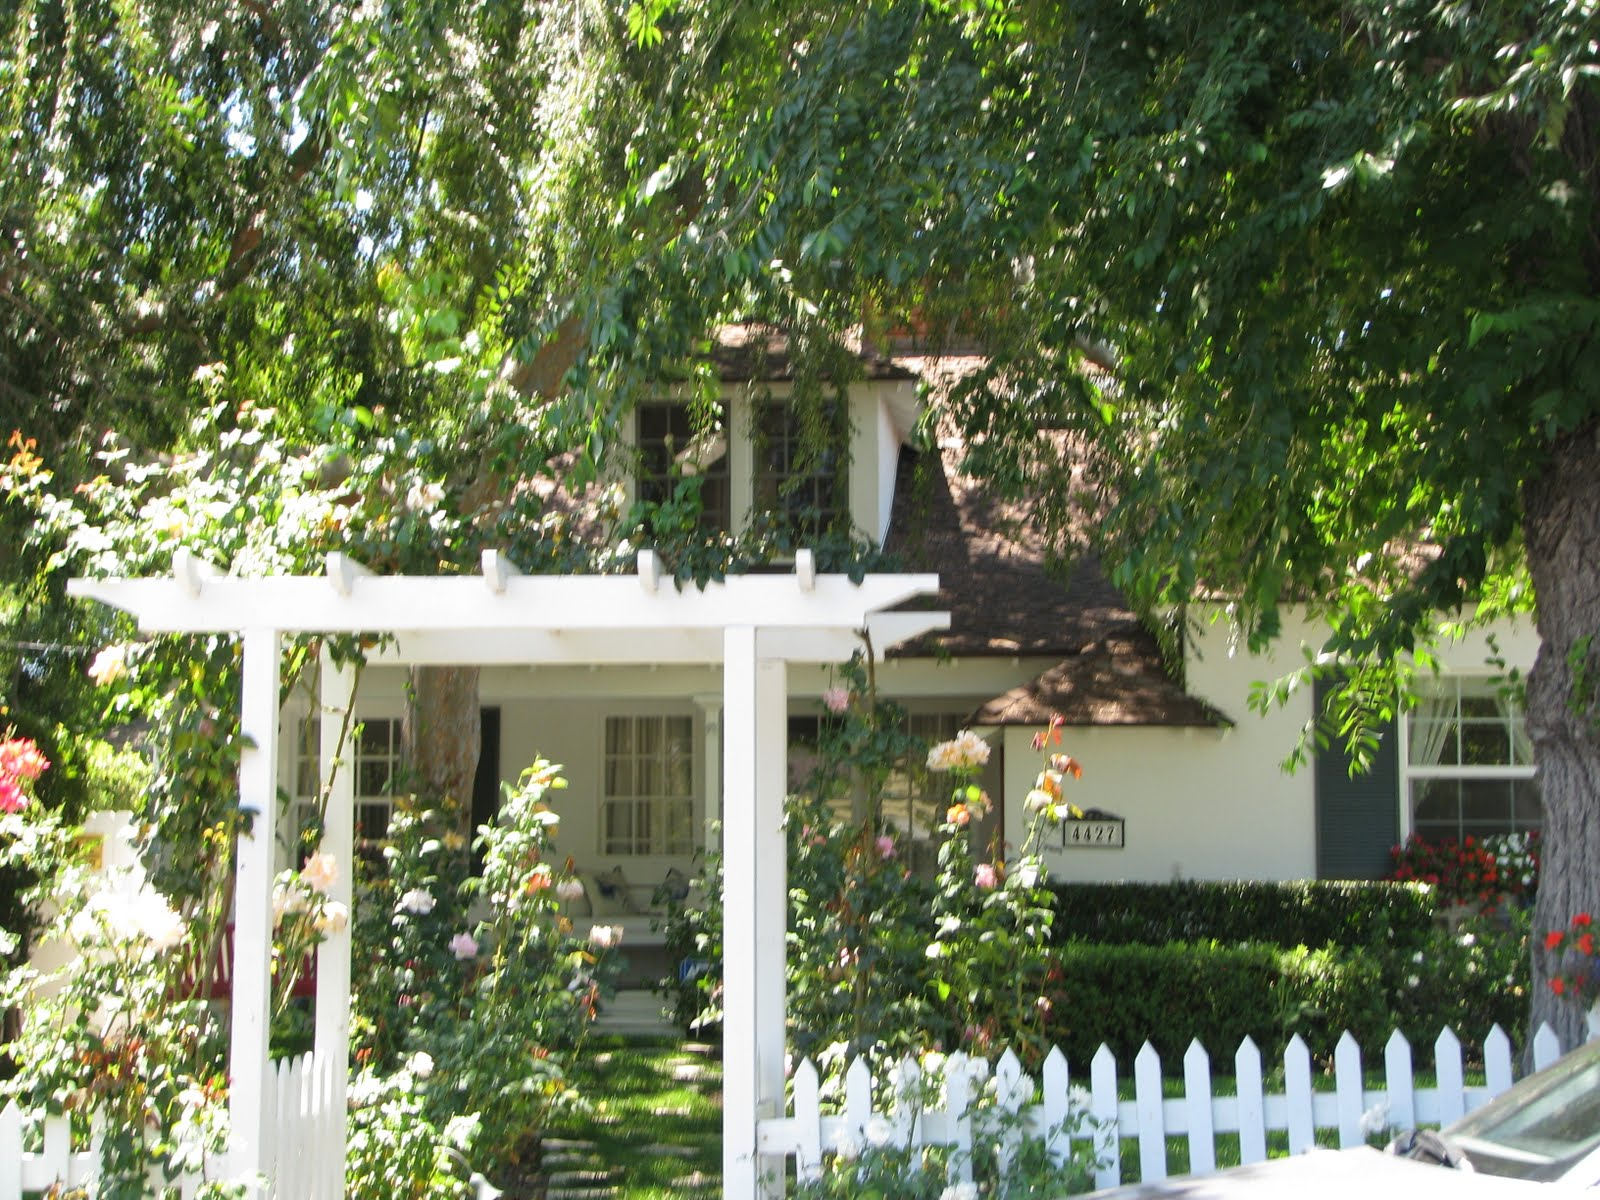 movie locations and more bewitched 2005 dreadful movie starring current box office poison nicole kidman but her house was cute